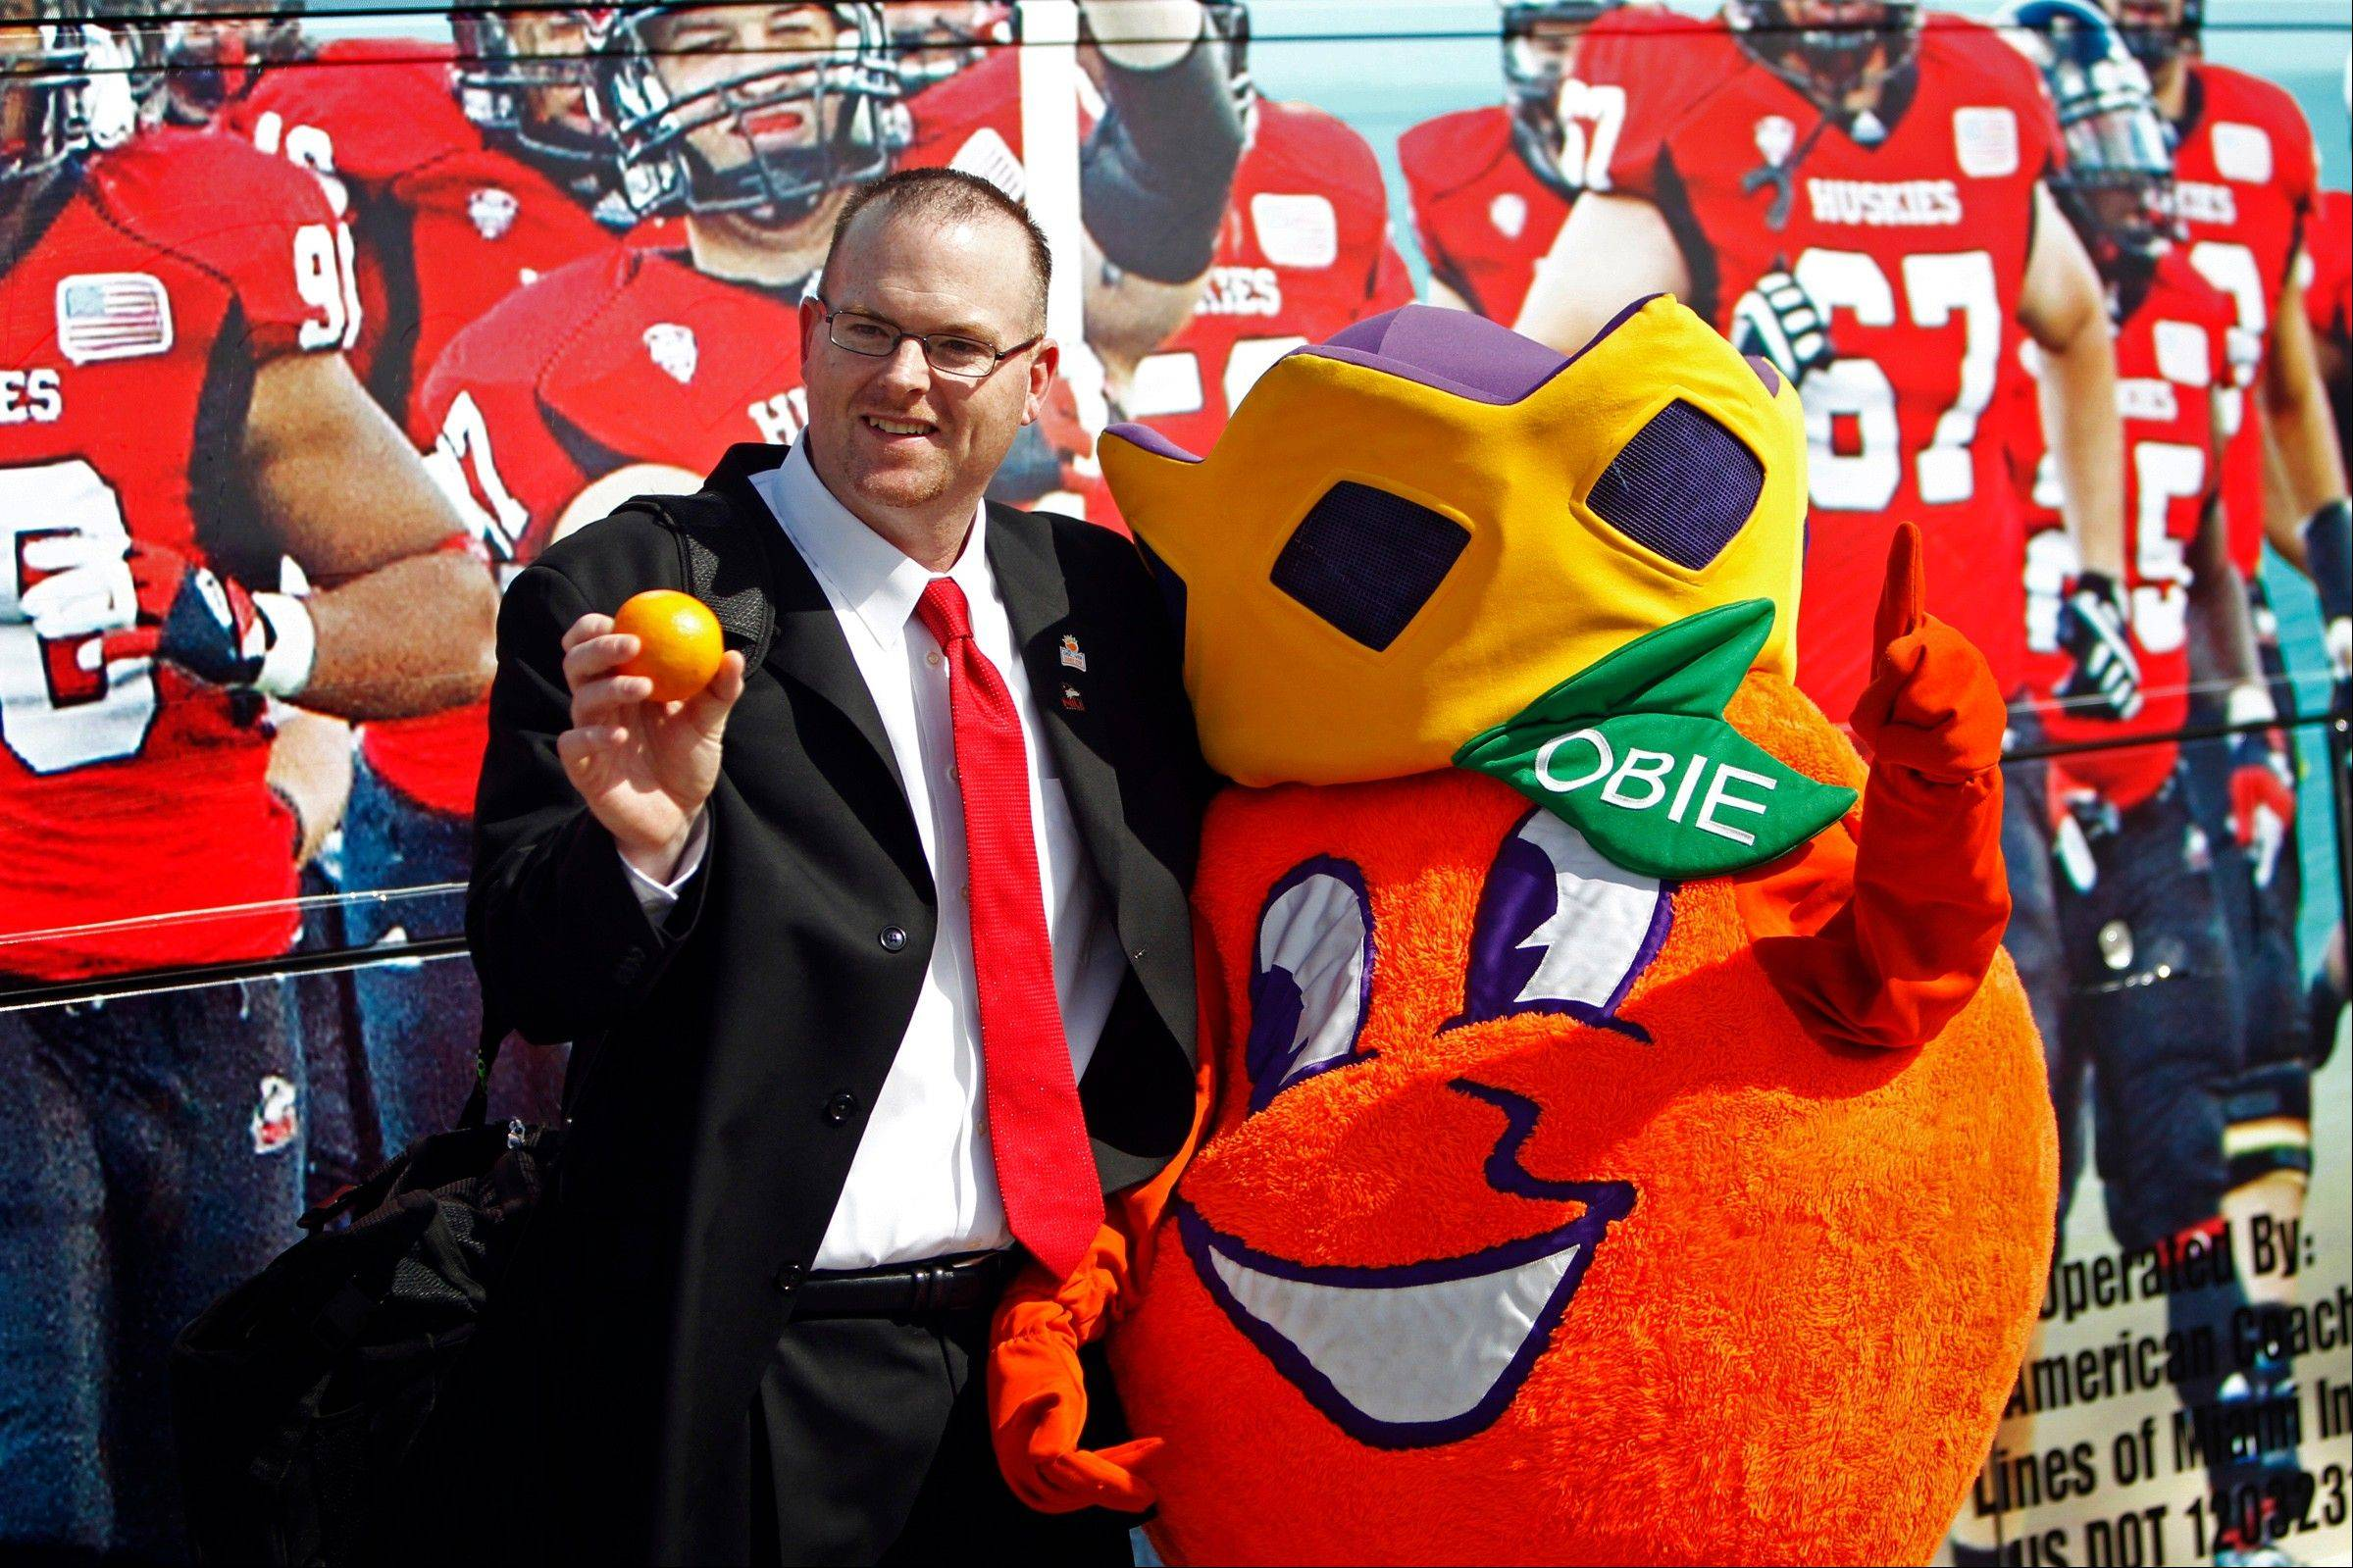 Northern Illinois head coach Rod Carey poses with Obie, the Orange Bowl mascot, Wednesday as the team arrives at Miami International Airport in Miami. Northern Illinois is scheduled to play Florida State in the Orange Bowl on Tuesday.